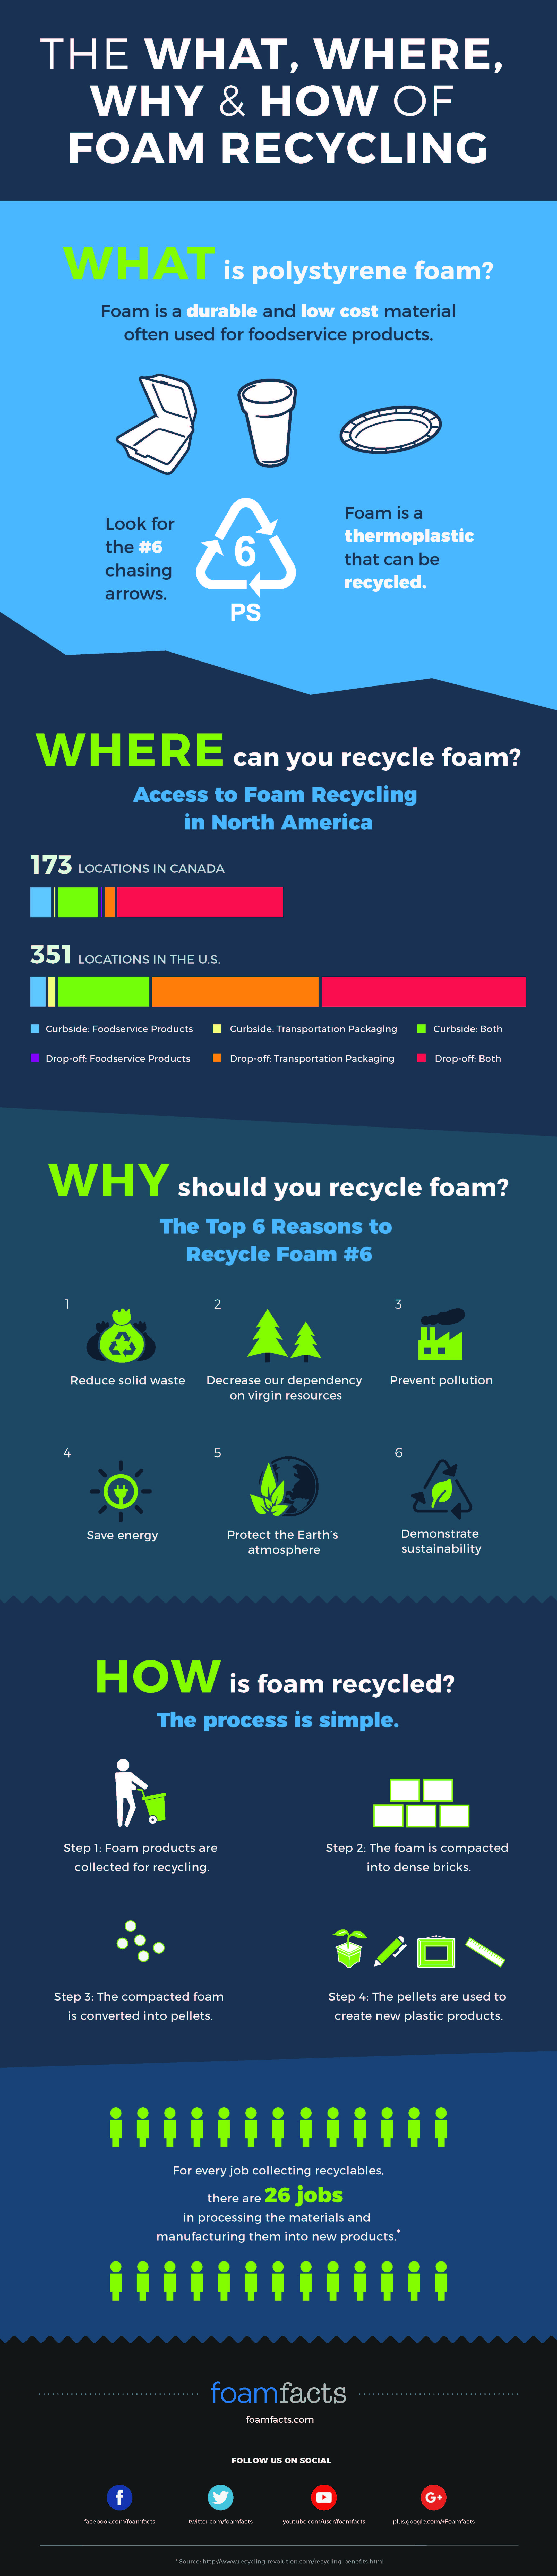 The What, Where, Why and How of Foam Recycling: Infographic